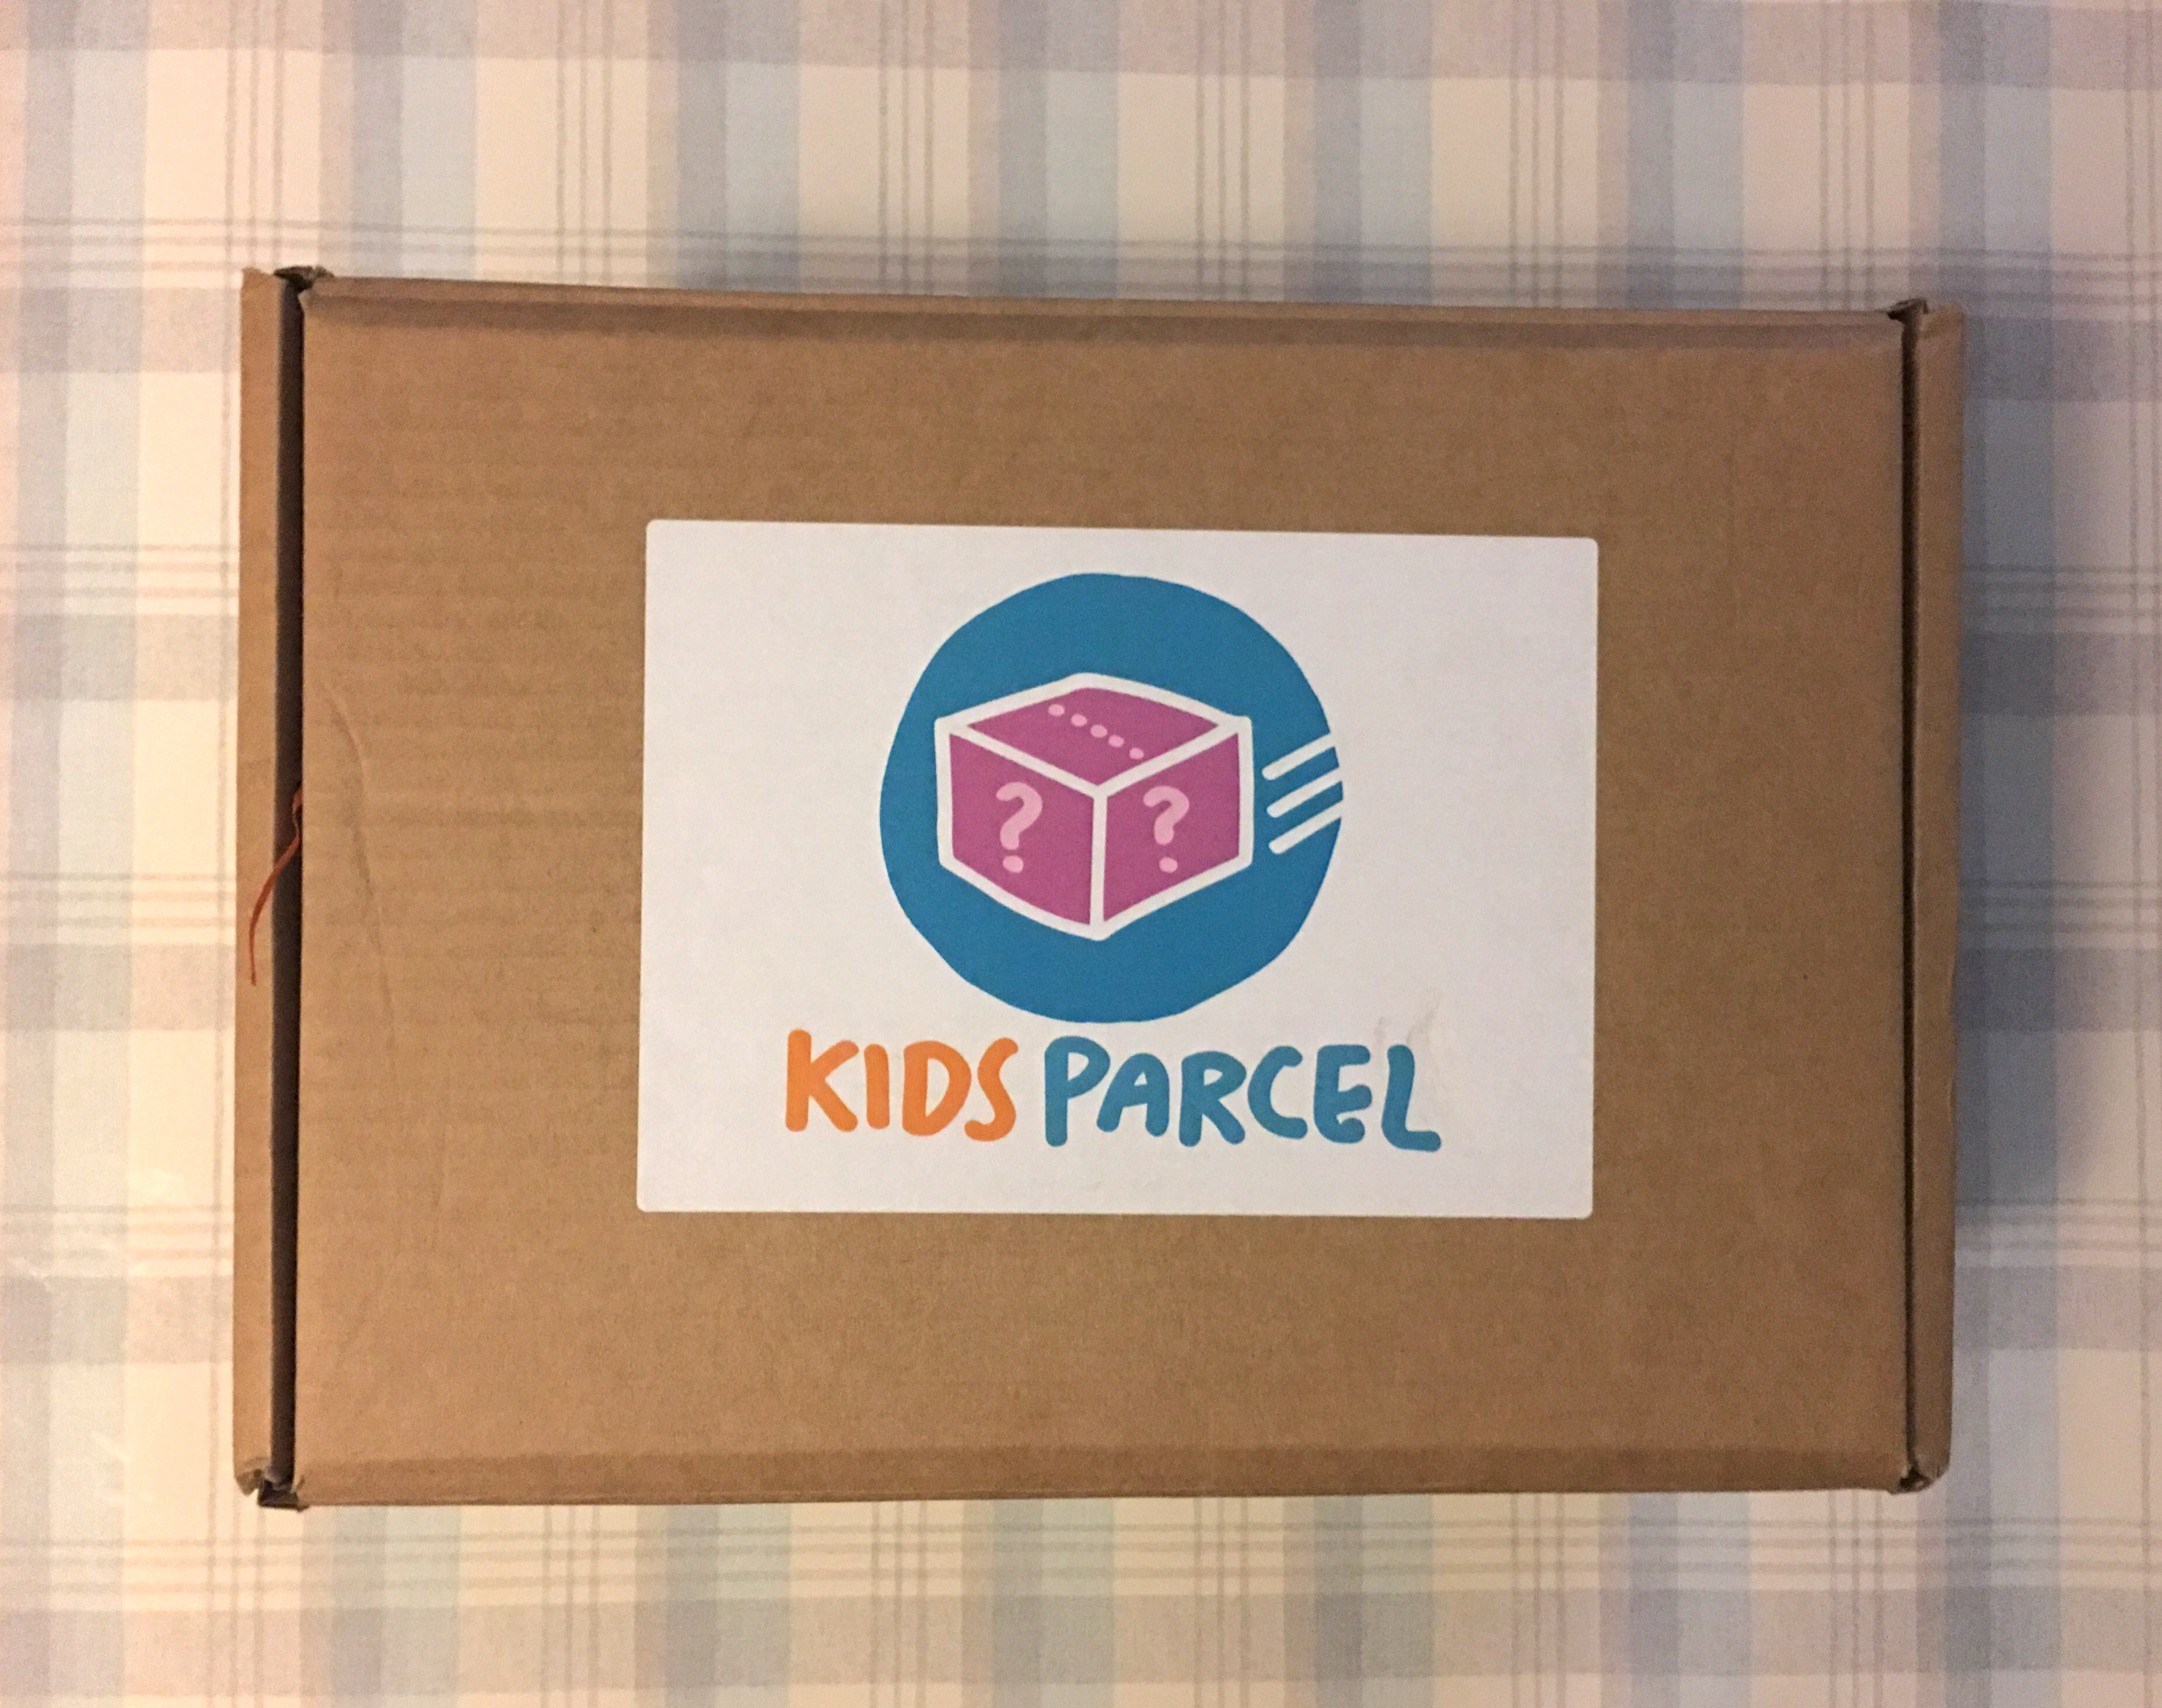 received at i parcel and on hold for review